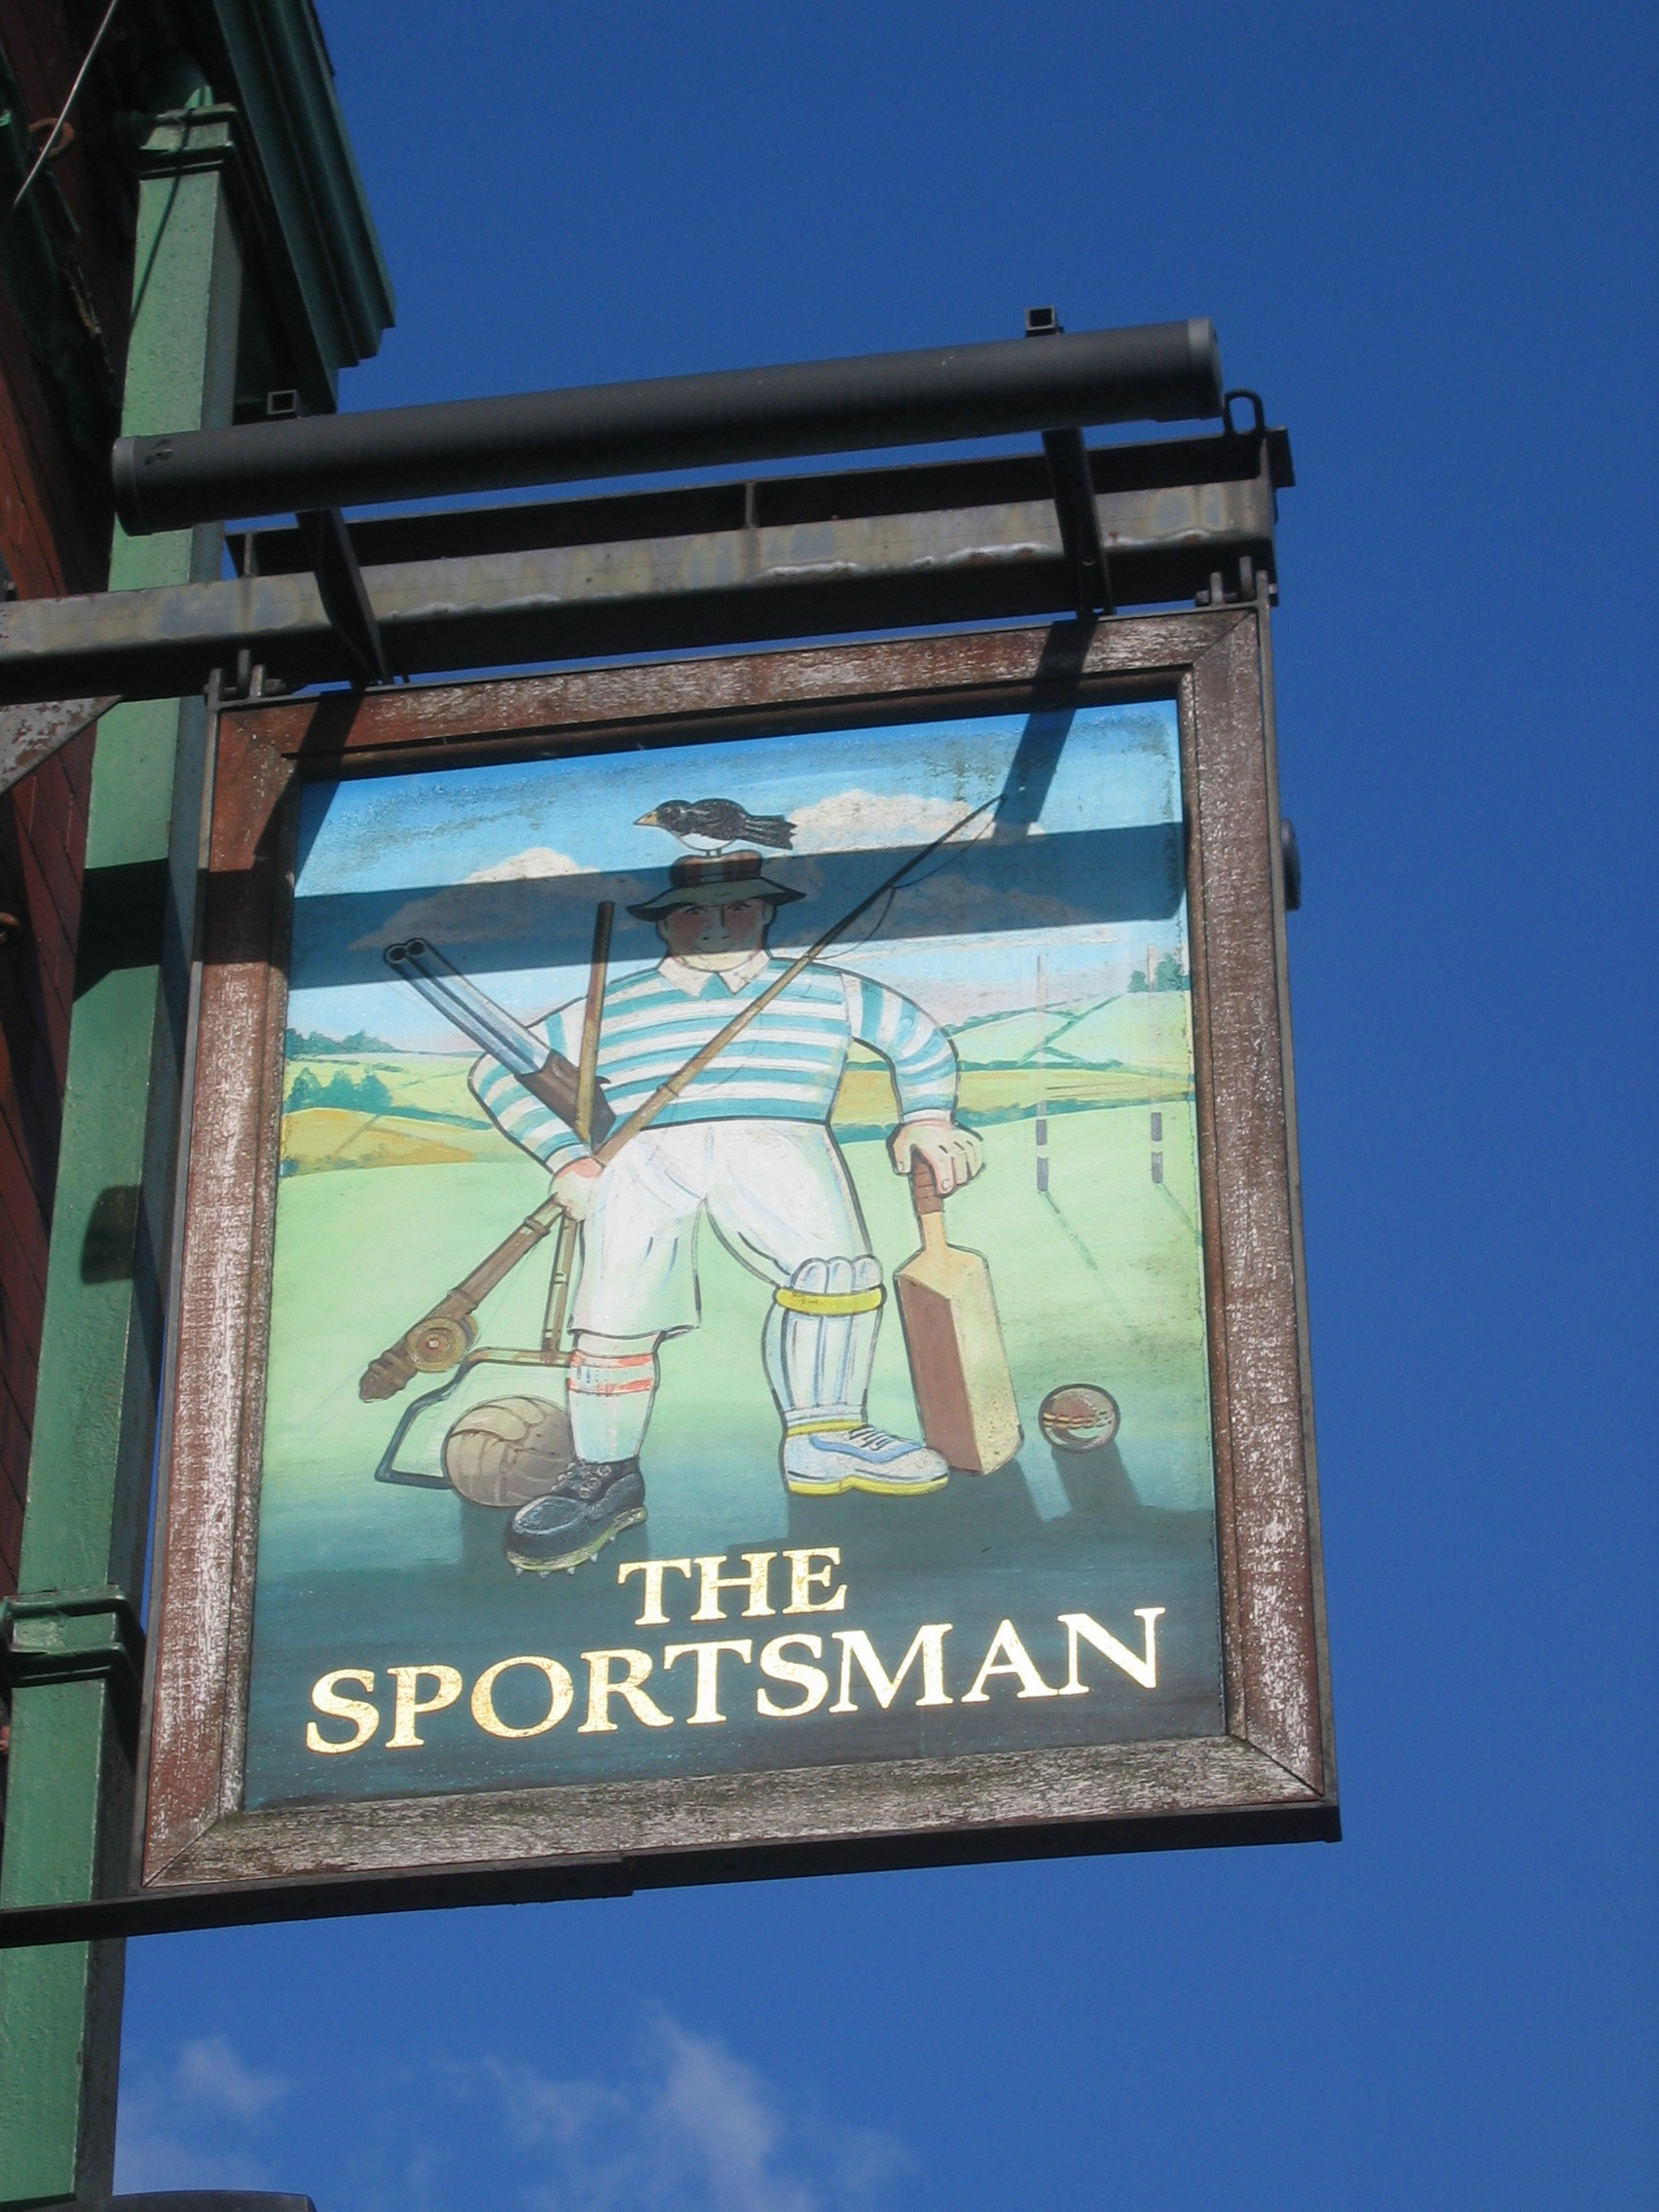 Photo taken by me – The Sportsman pub sign, Hyde, Manchester